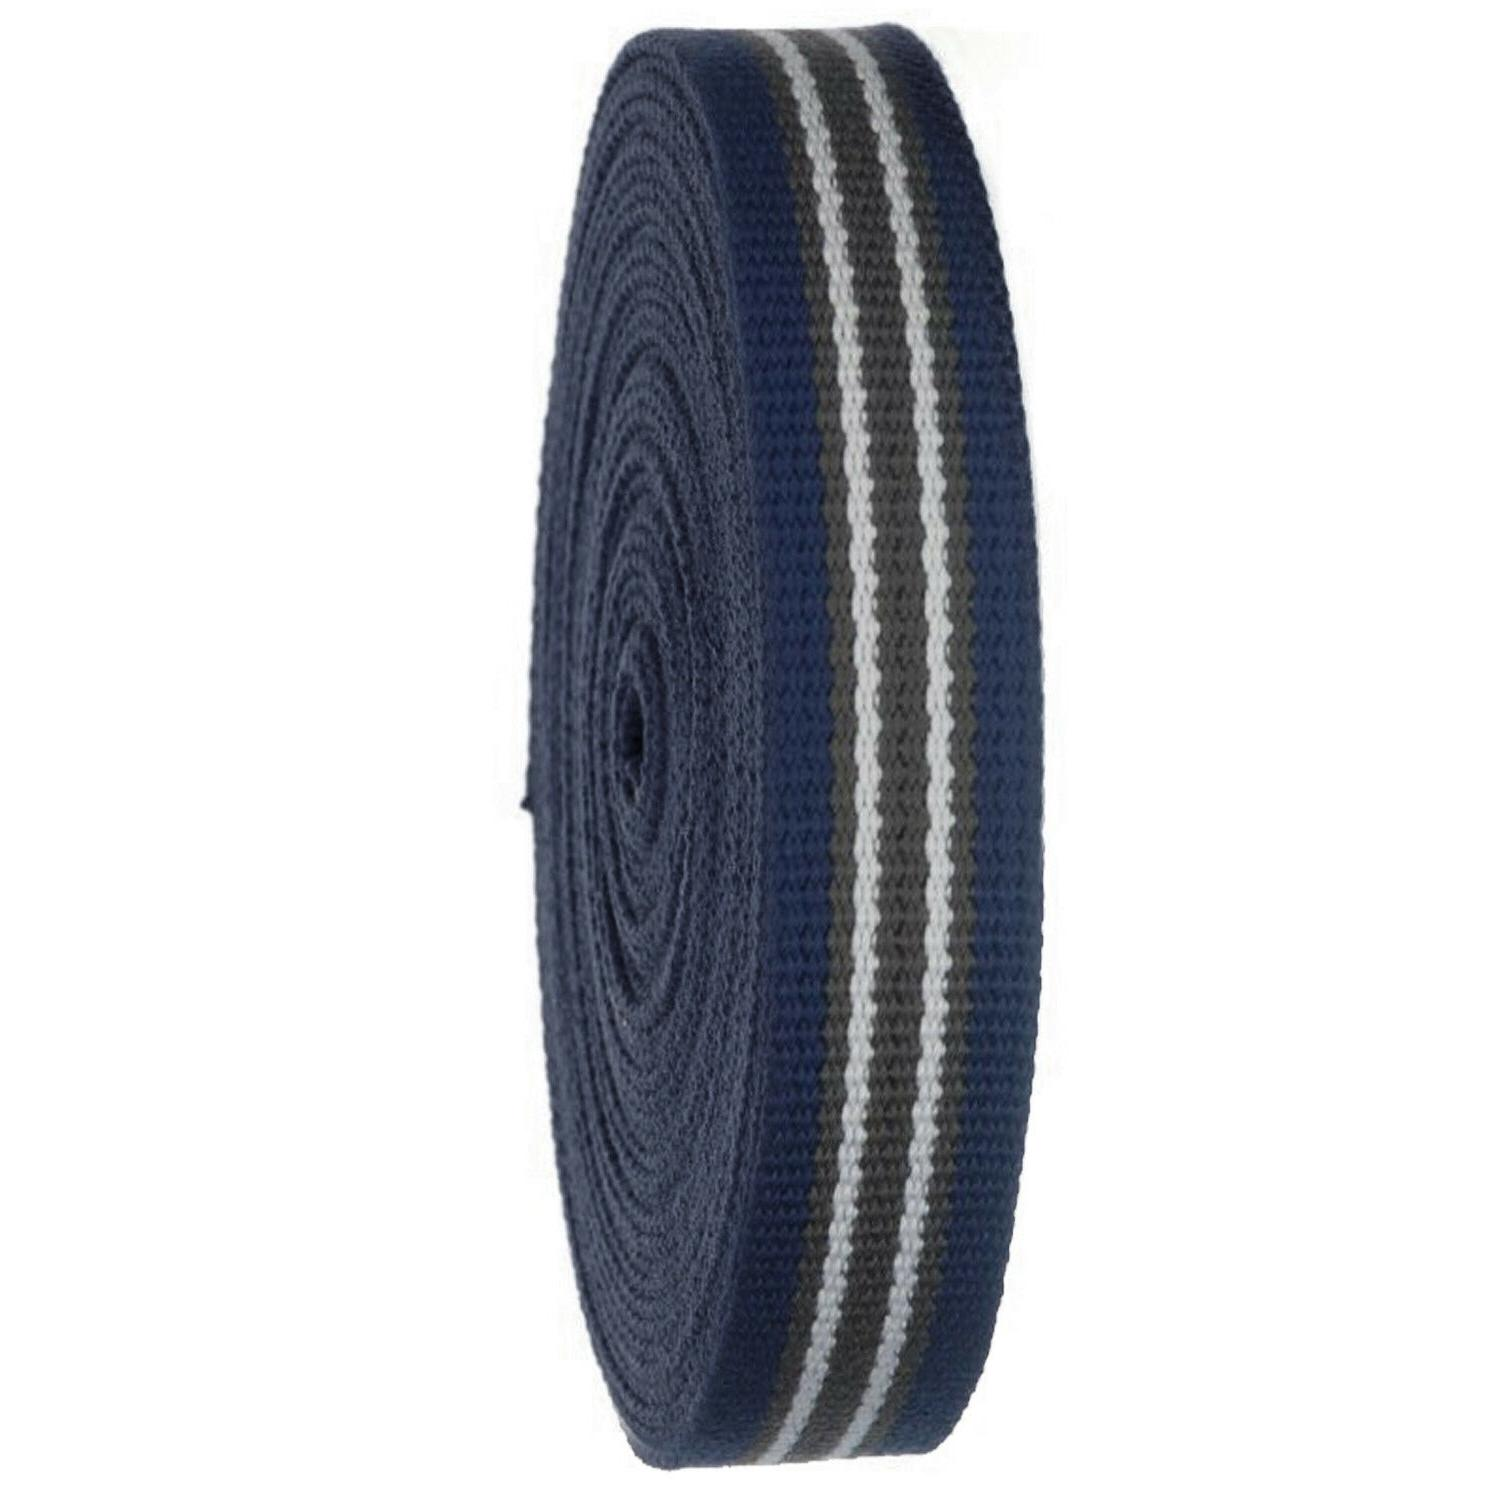 Striped Heavy Canvas Webbing Roll Strap Belts, Bags,